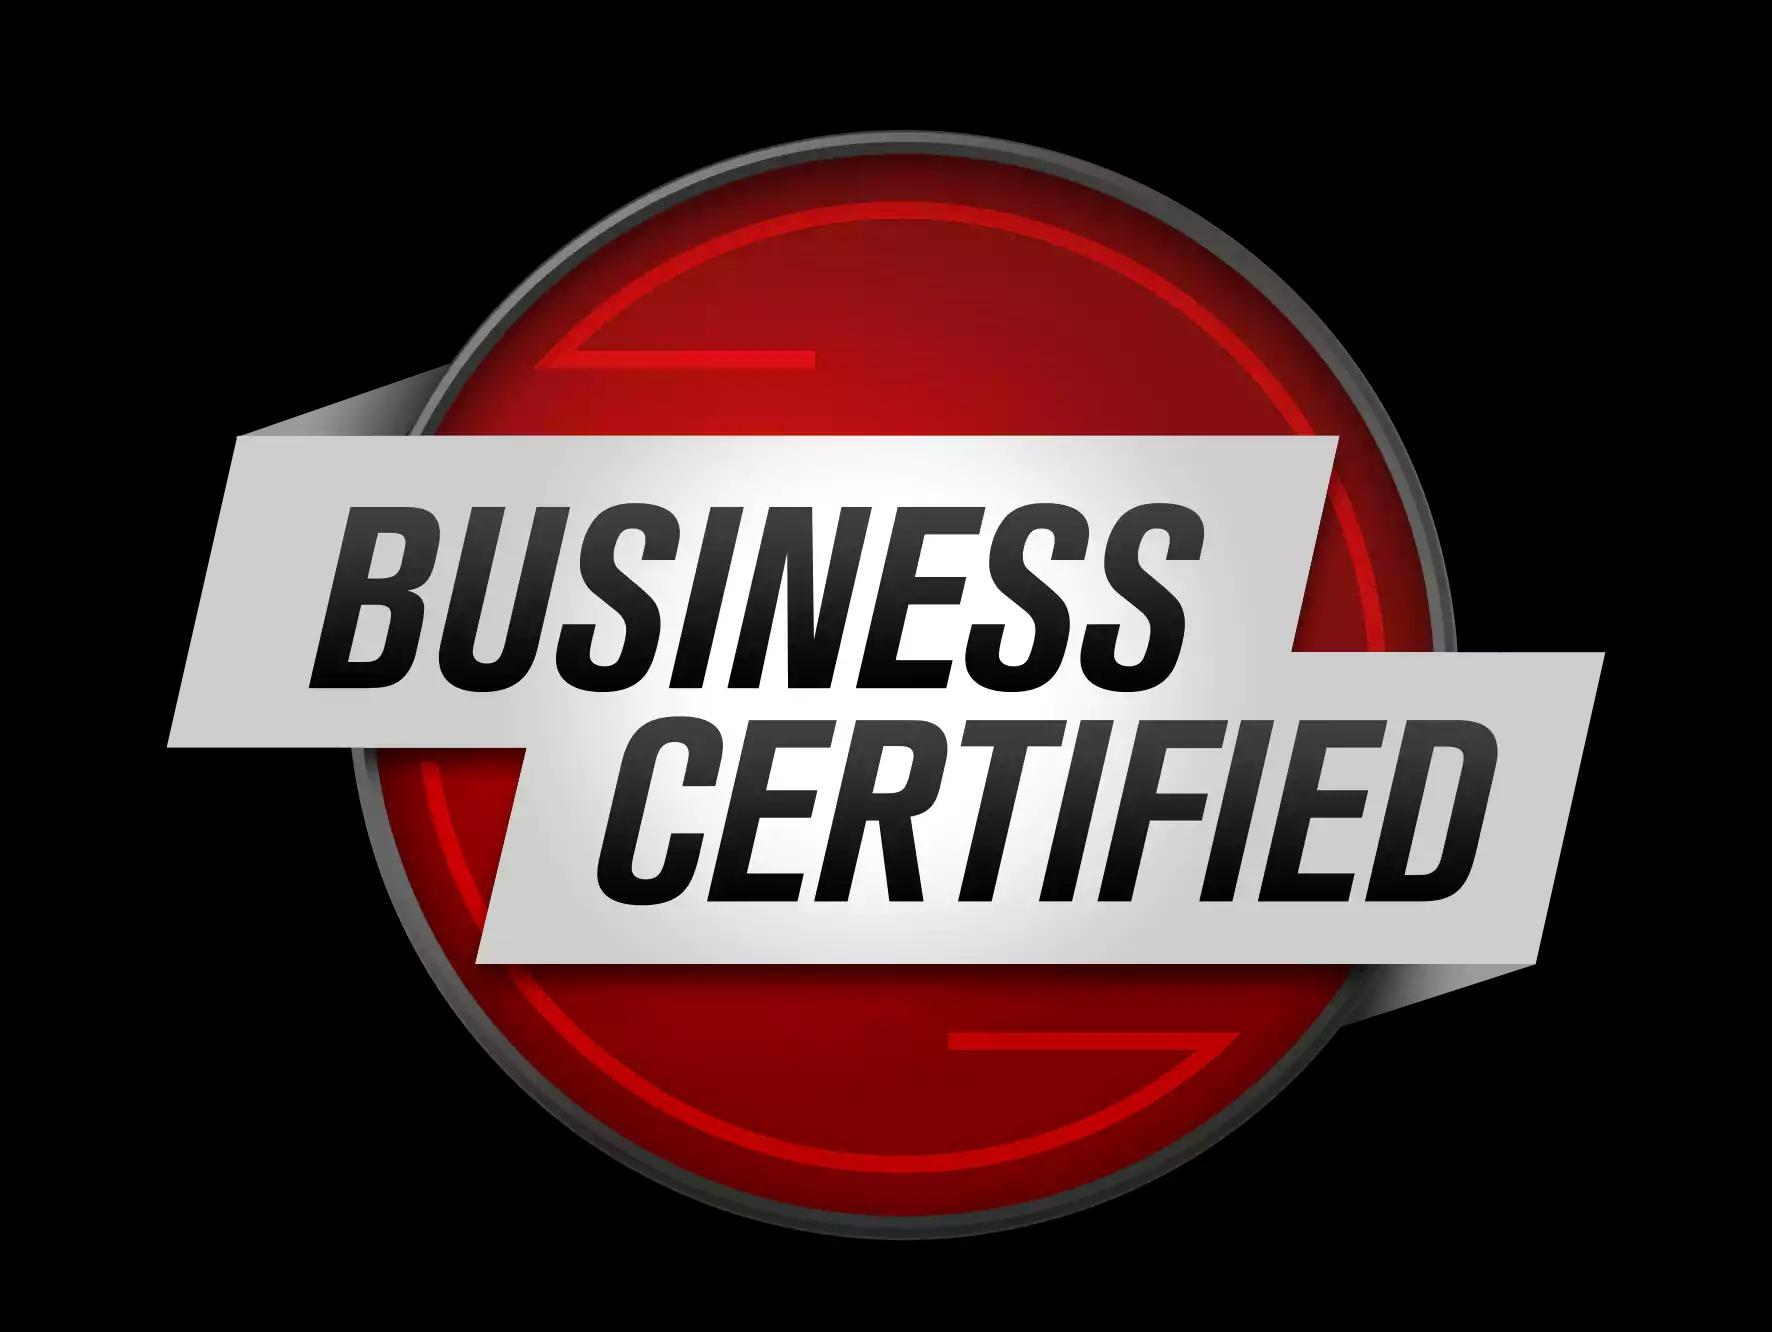 business certfied